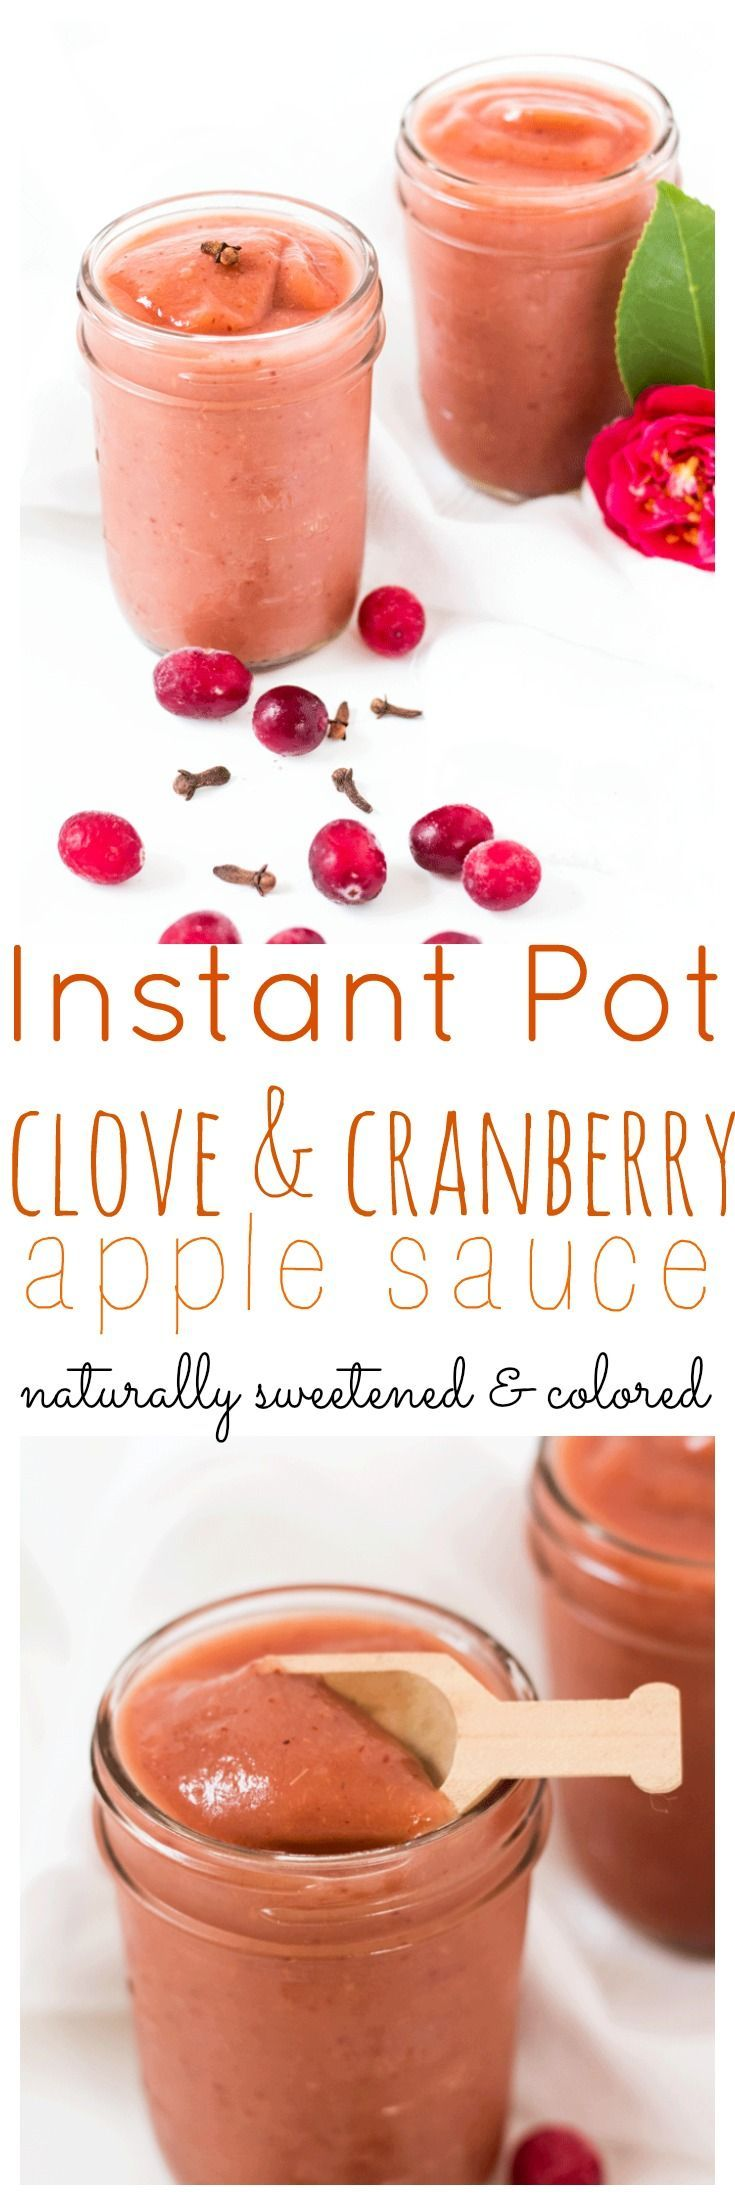 Clove and Cranberry Apple Sauce is the perfect sweetener for baked goods or a popping pink snack for little hands. Naturally sweetened via @wholefoodbellies